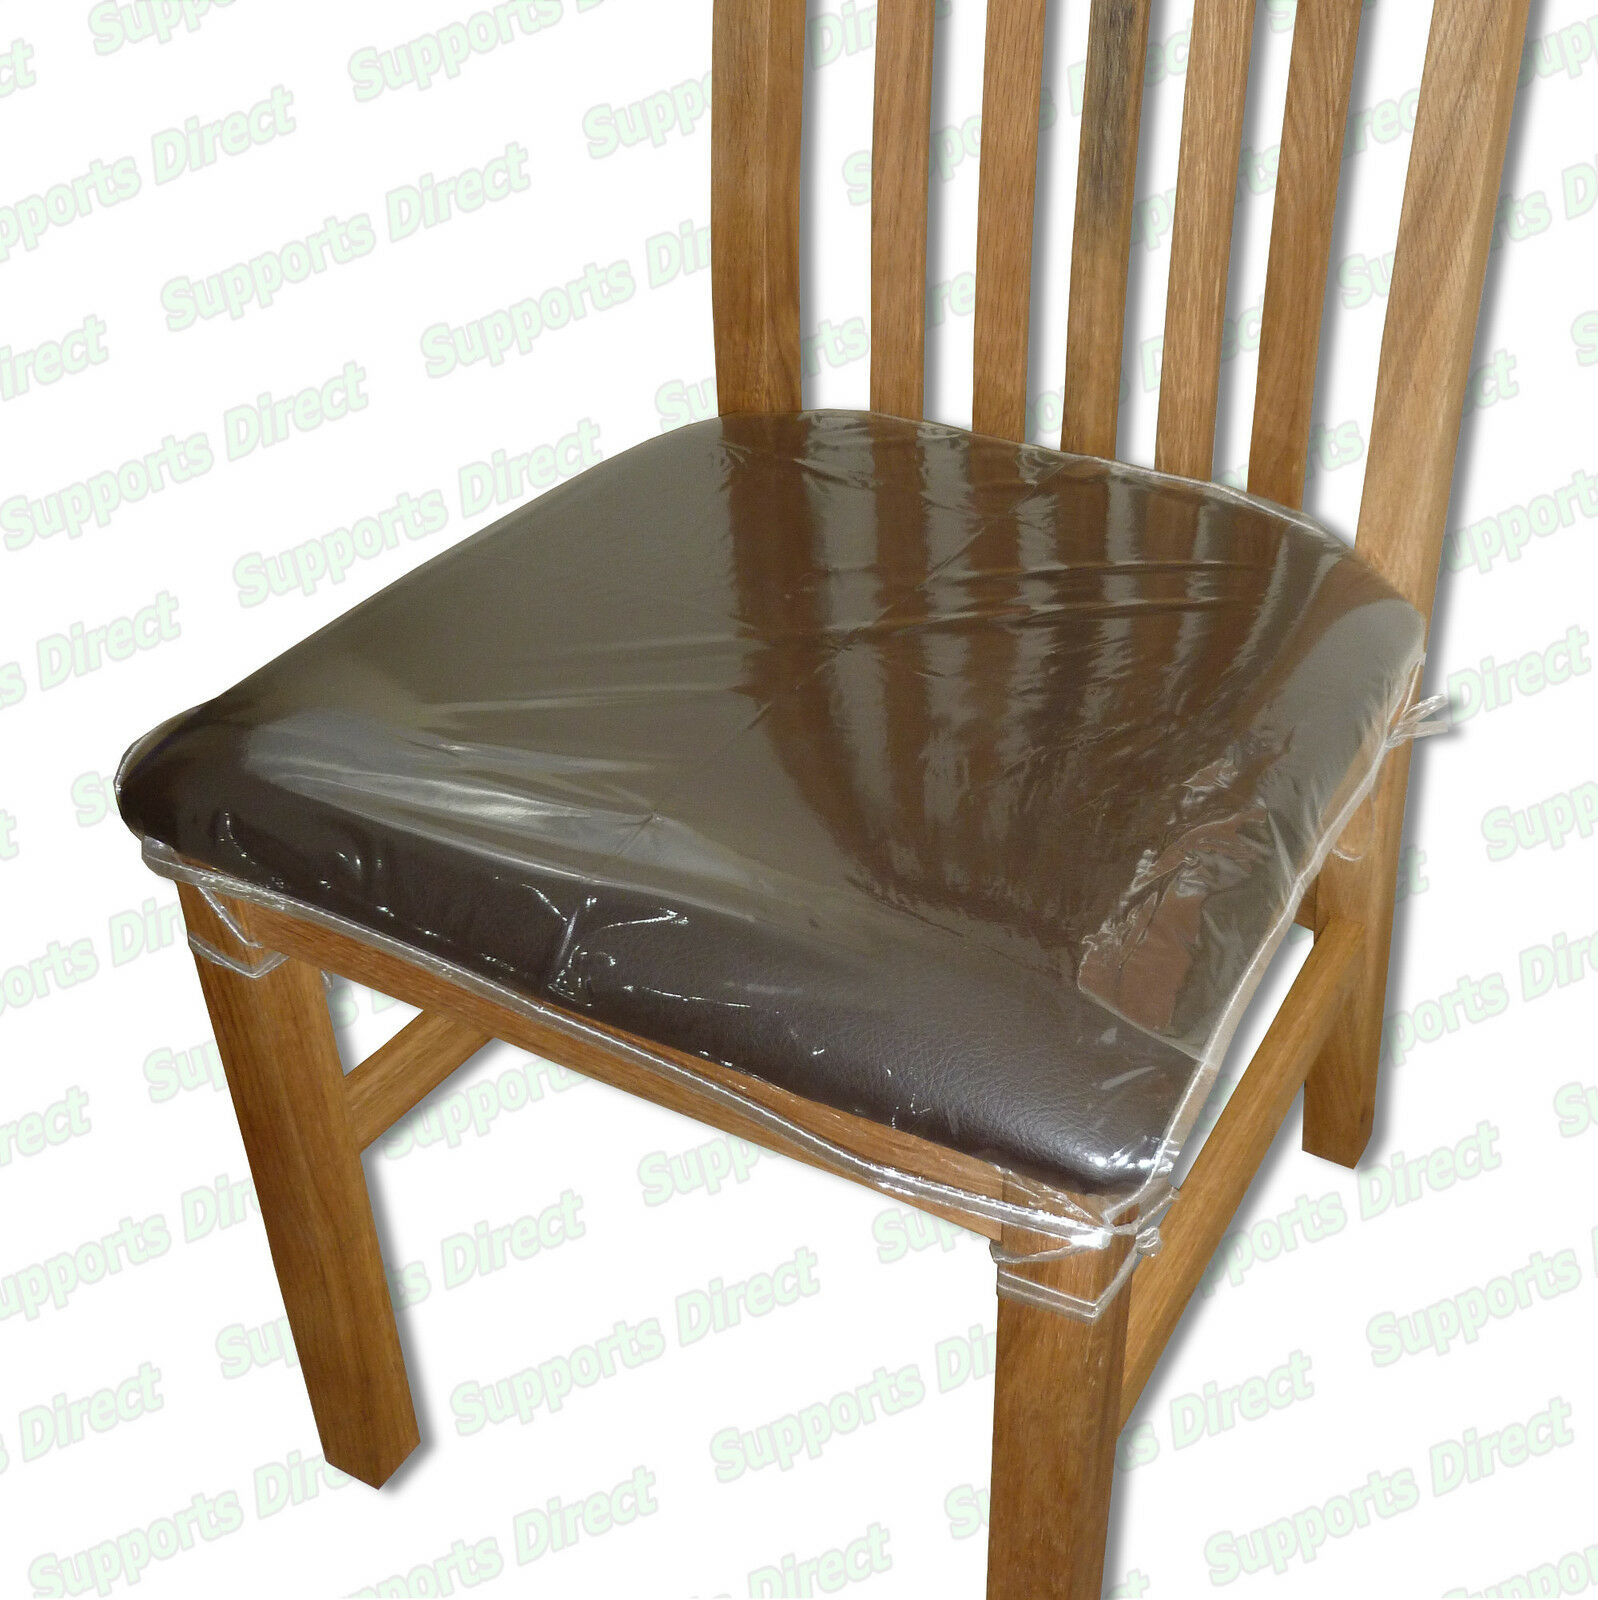 Strong Dining Chair Protectors Clear Plastic Cushion Seat  : T2eC16JyIFJspI hBSQtS9lKSQ157 from www.ebay.co.uk size 1598 x 1600 jpeg 300kB